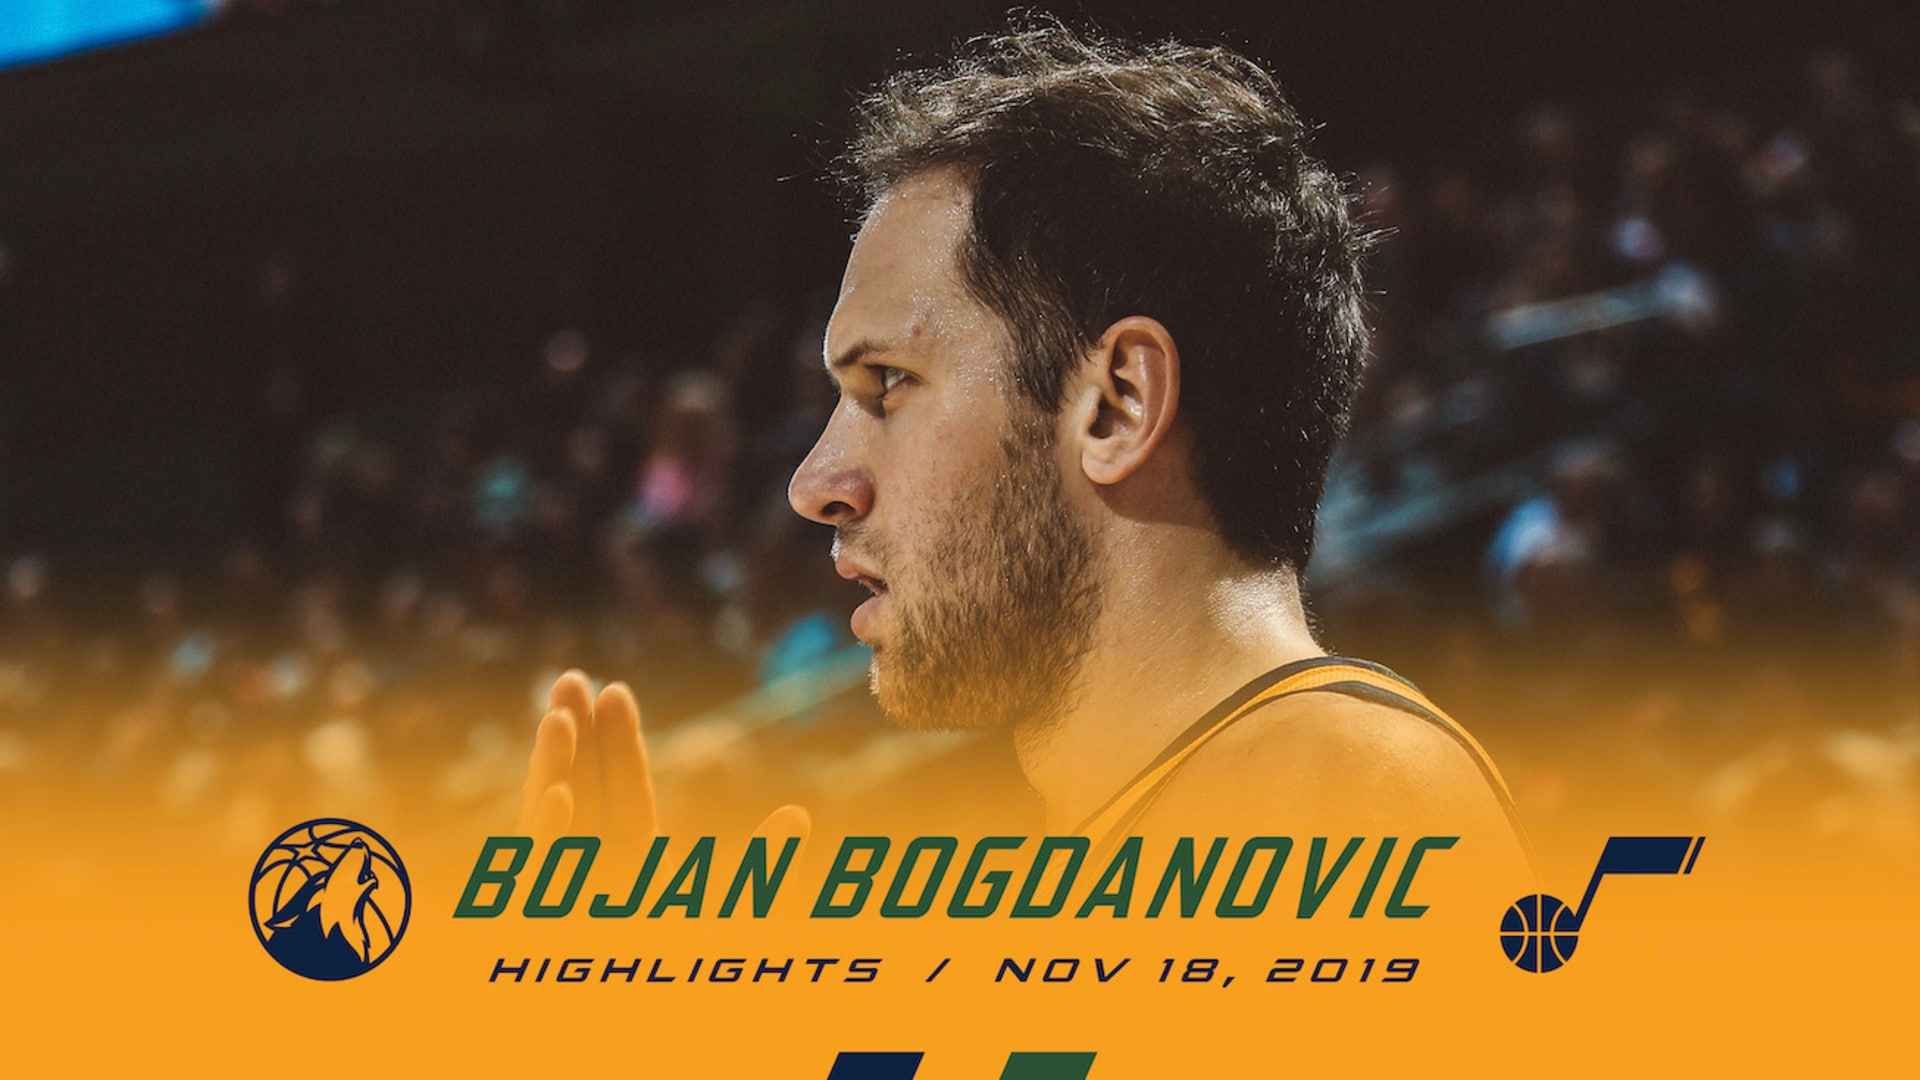 Highlights: Bojan Bogdanovic — 18 points, 6 rebounds